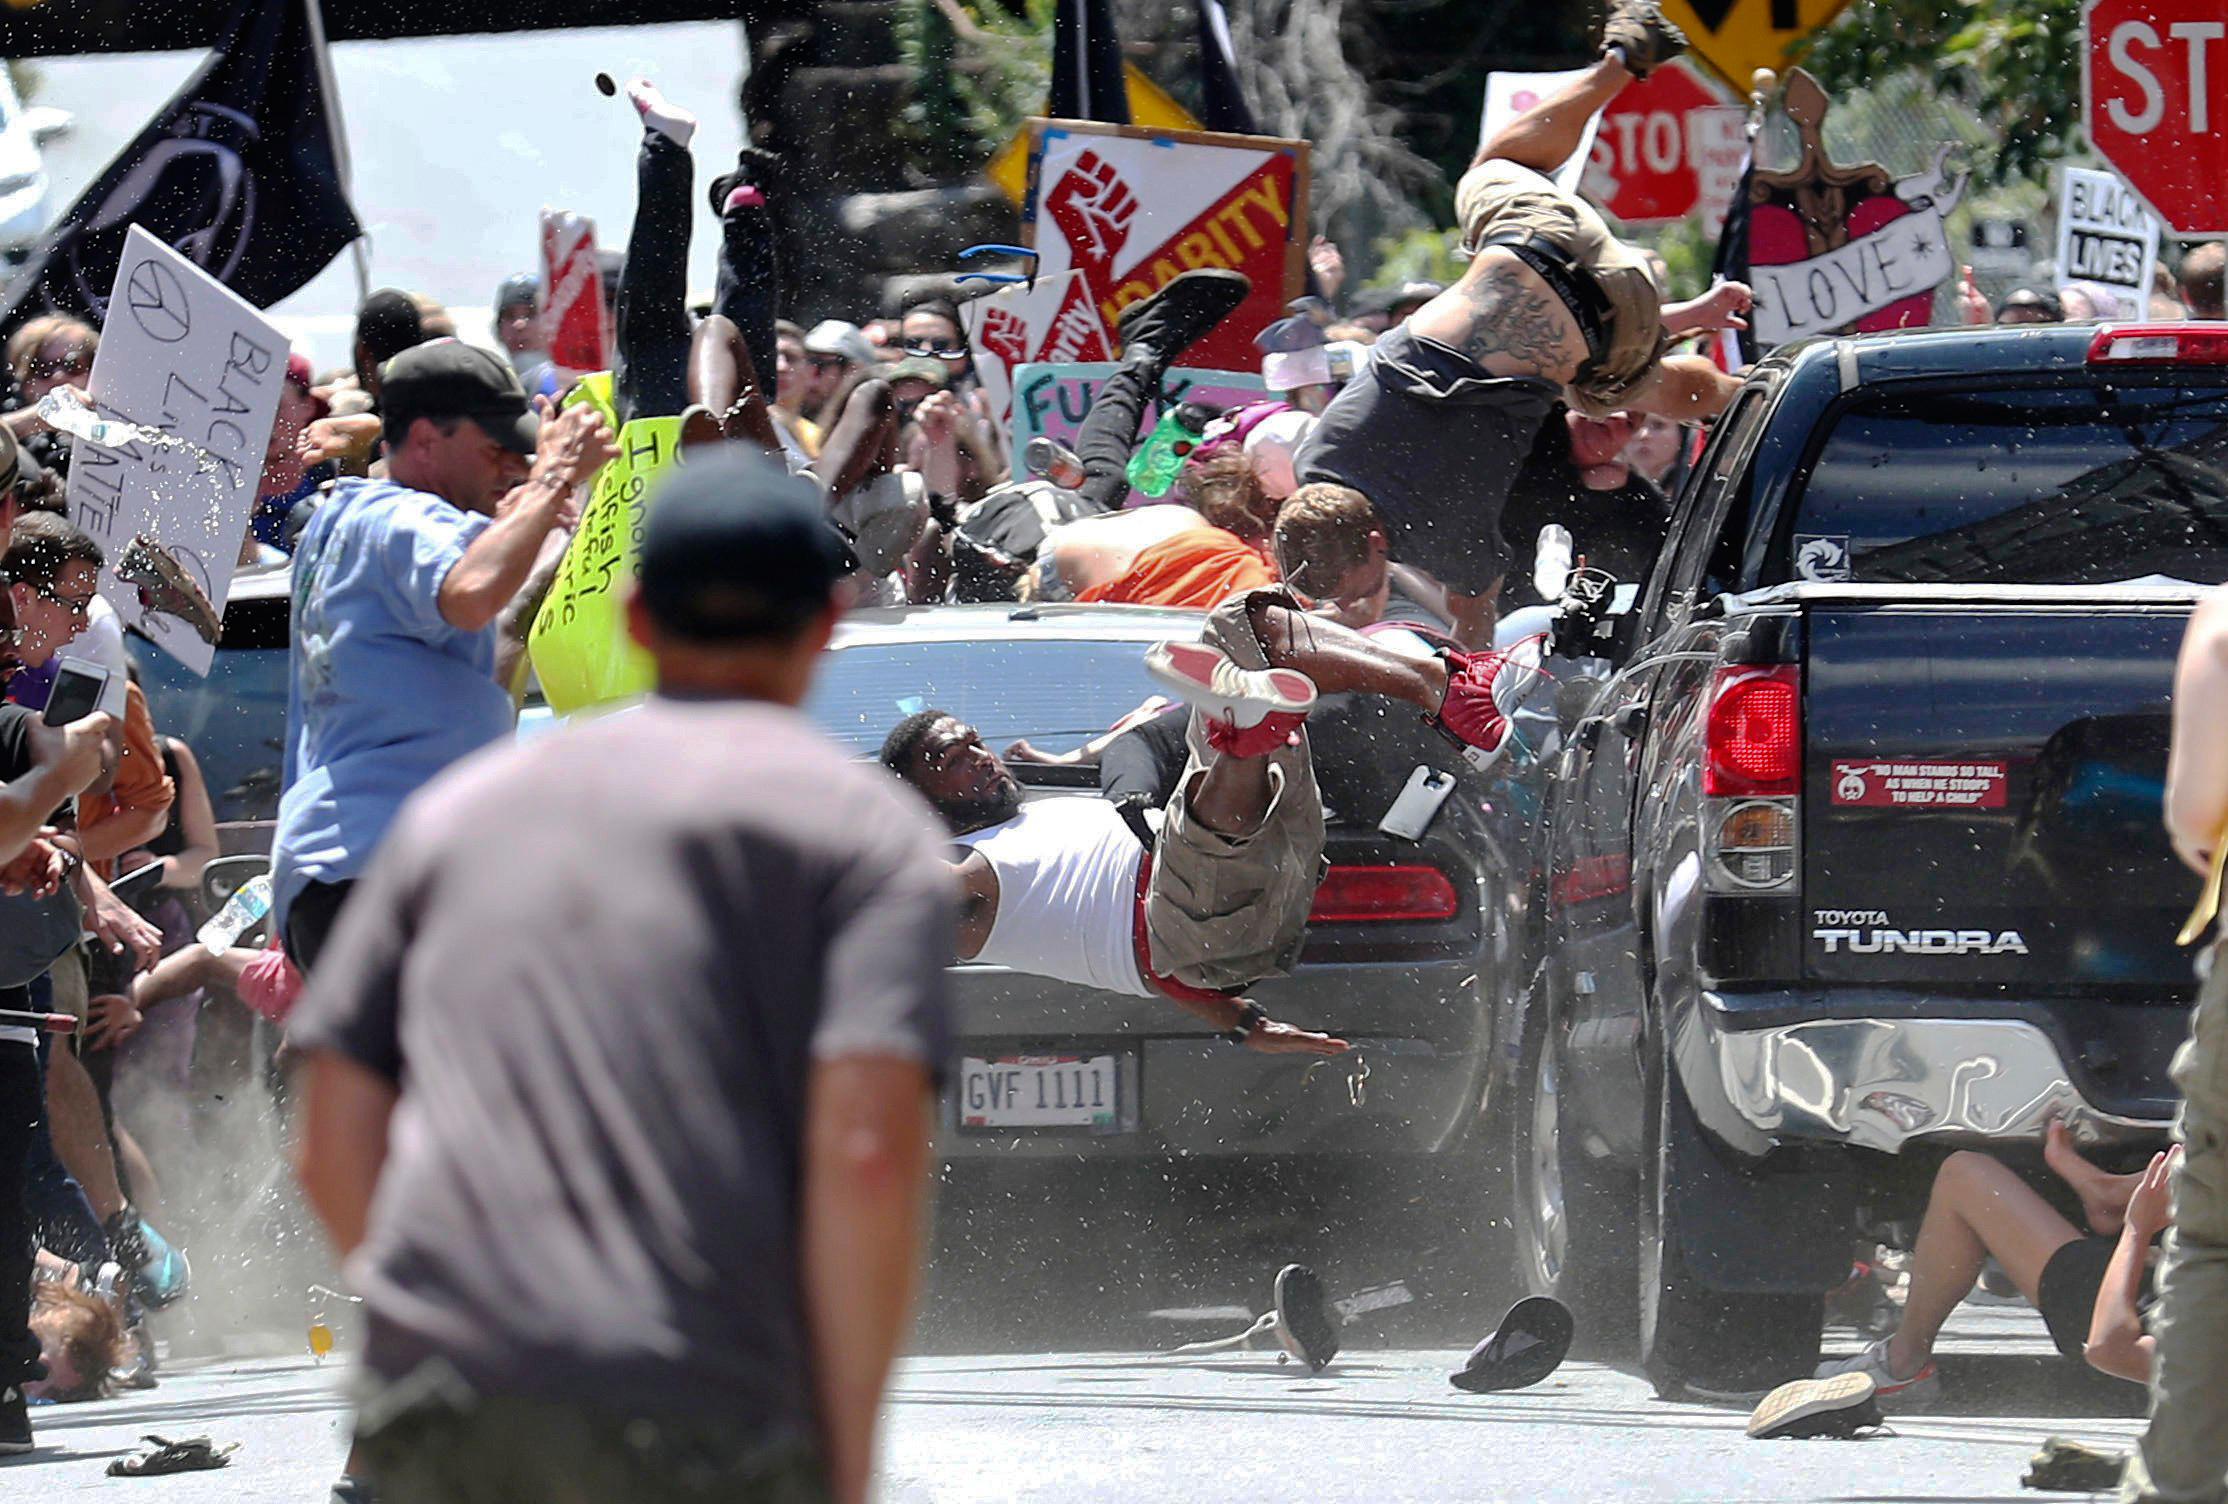 People fly into the air as a vehicle drives into a group of protesters demonstrating against a white nationalist rally in Charlottesville, Va., on Aug. 12, 2017.